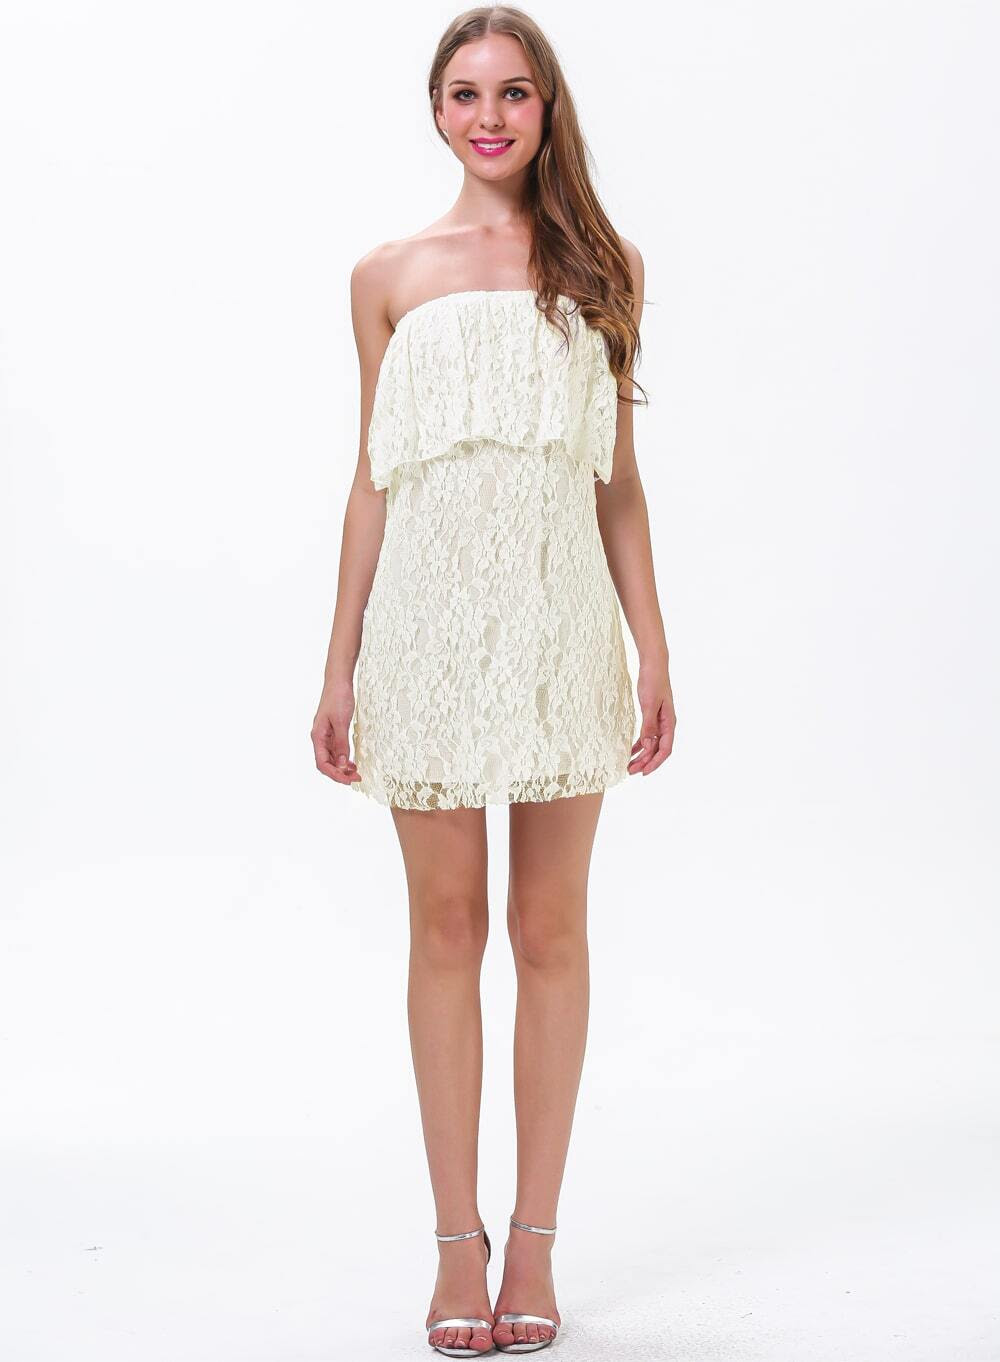 India Backless Cross Straps Playsuits gastown wholesalers asos